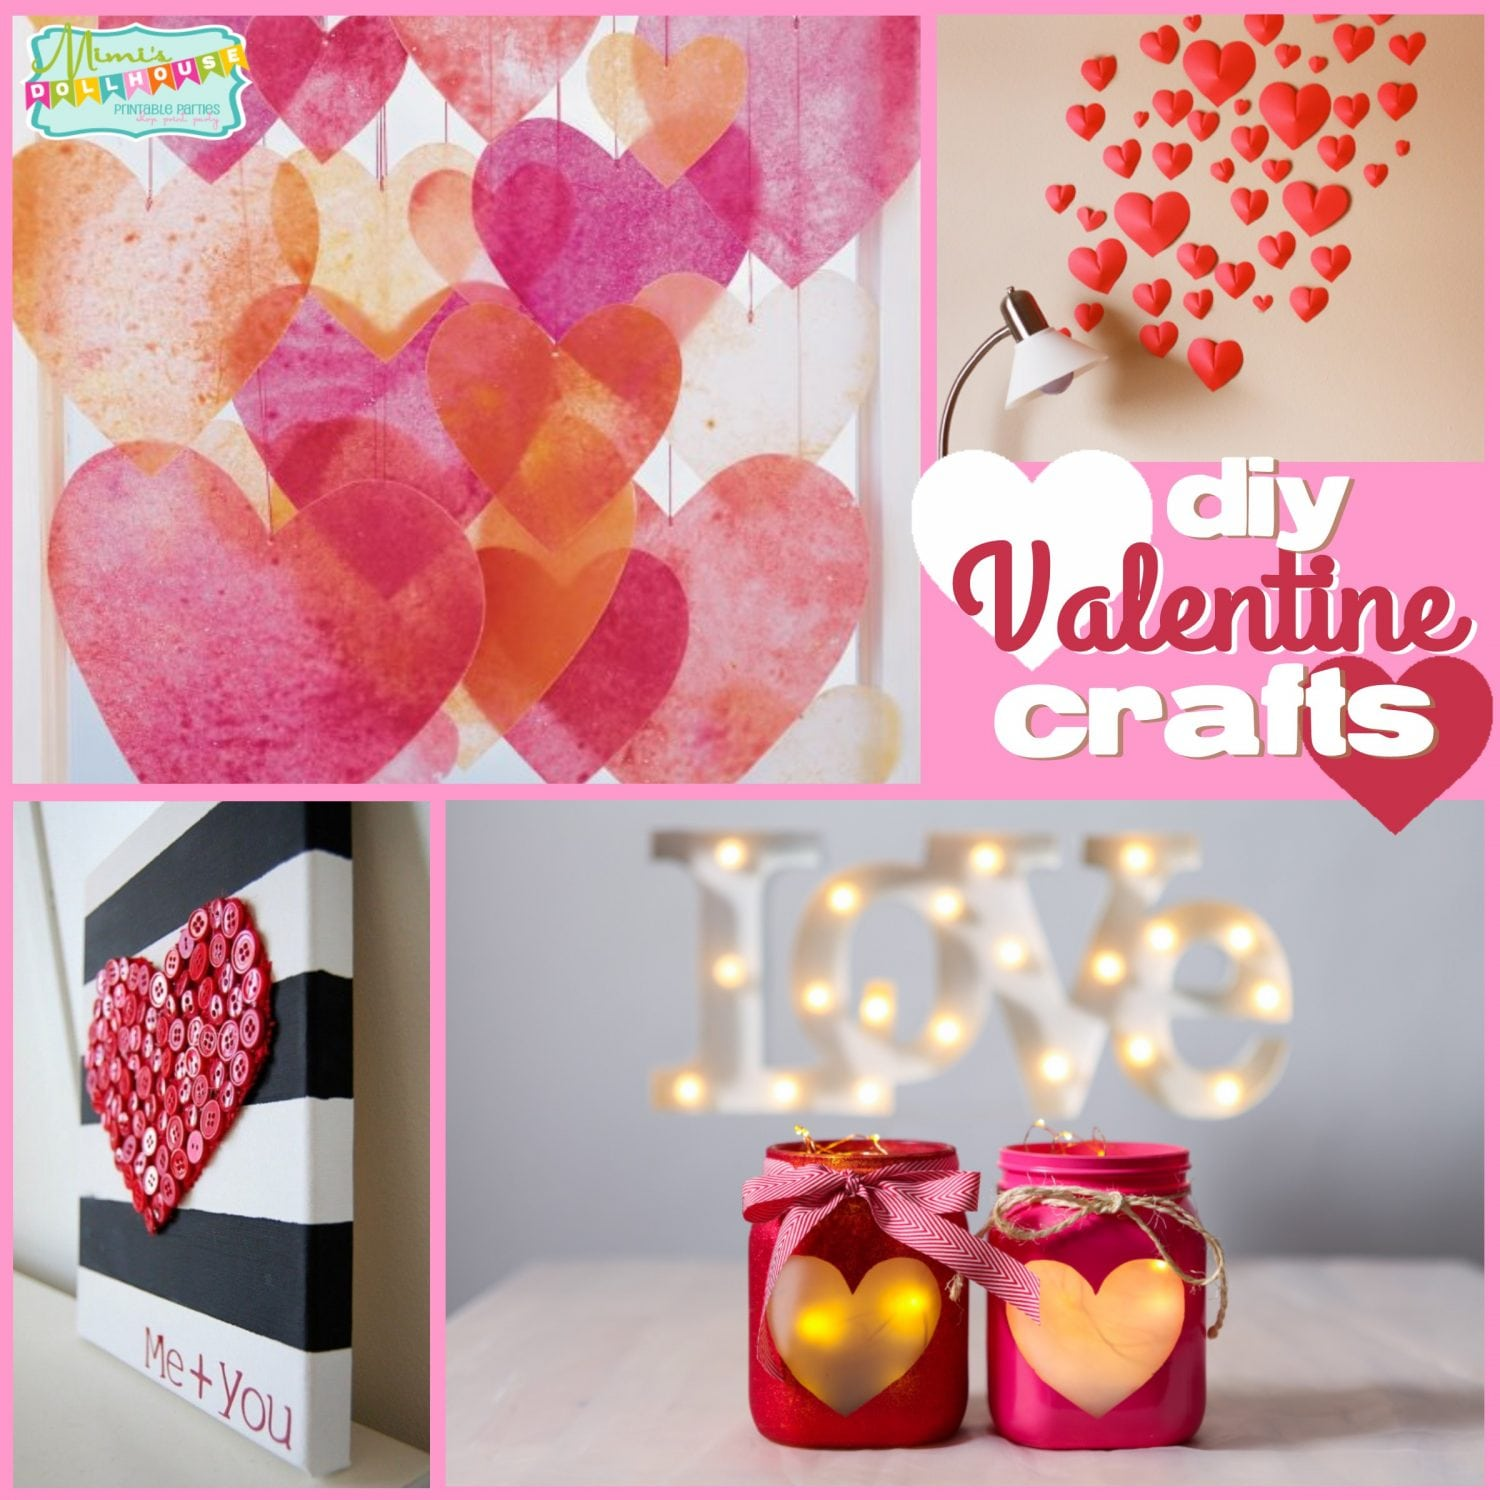 Valentine's Day: Cute Valentine Crafts